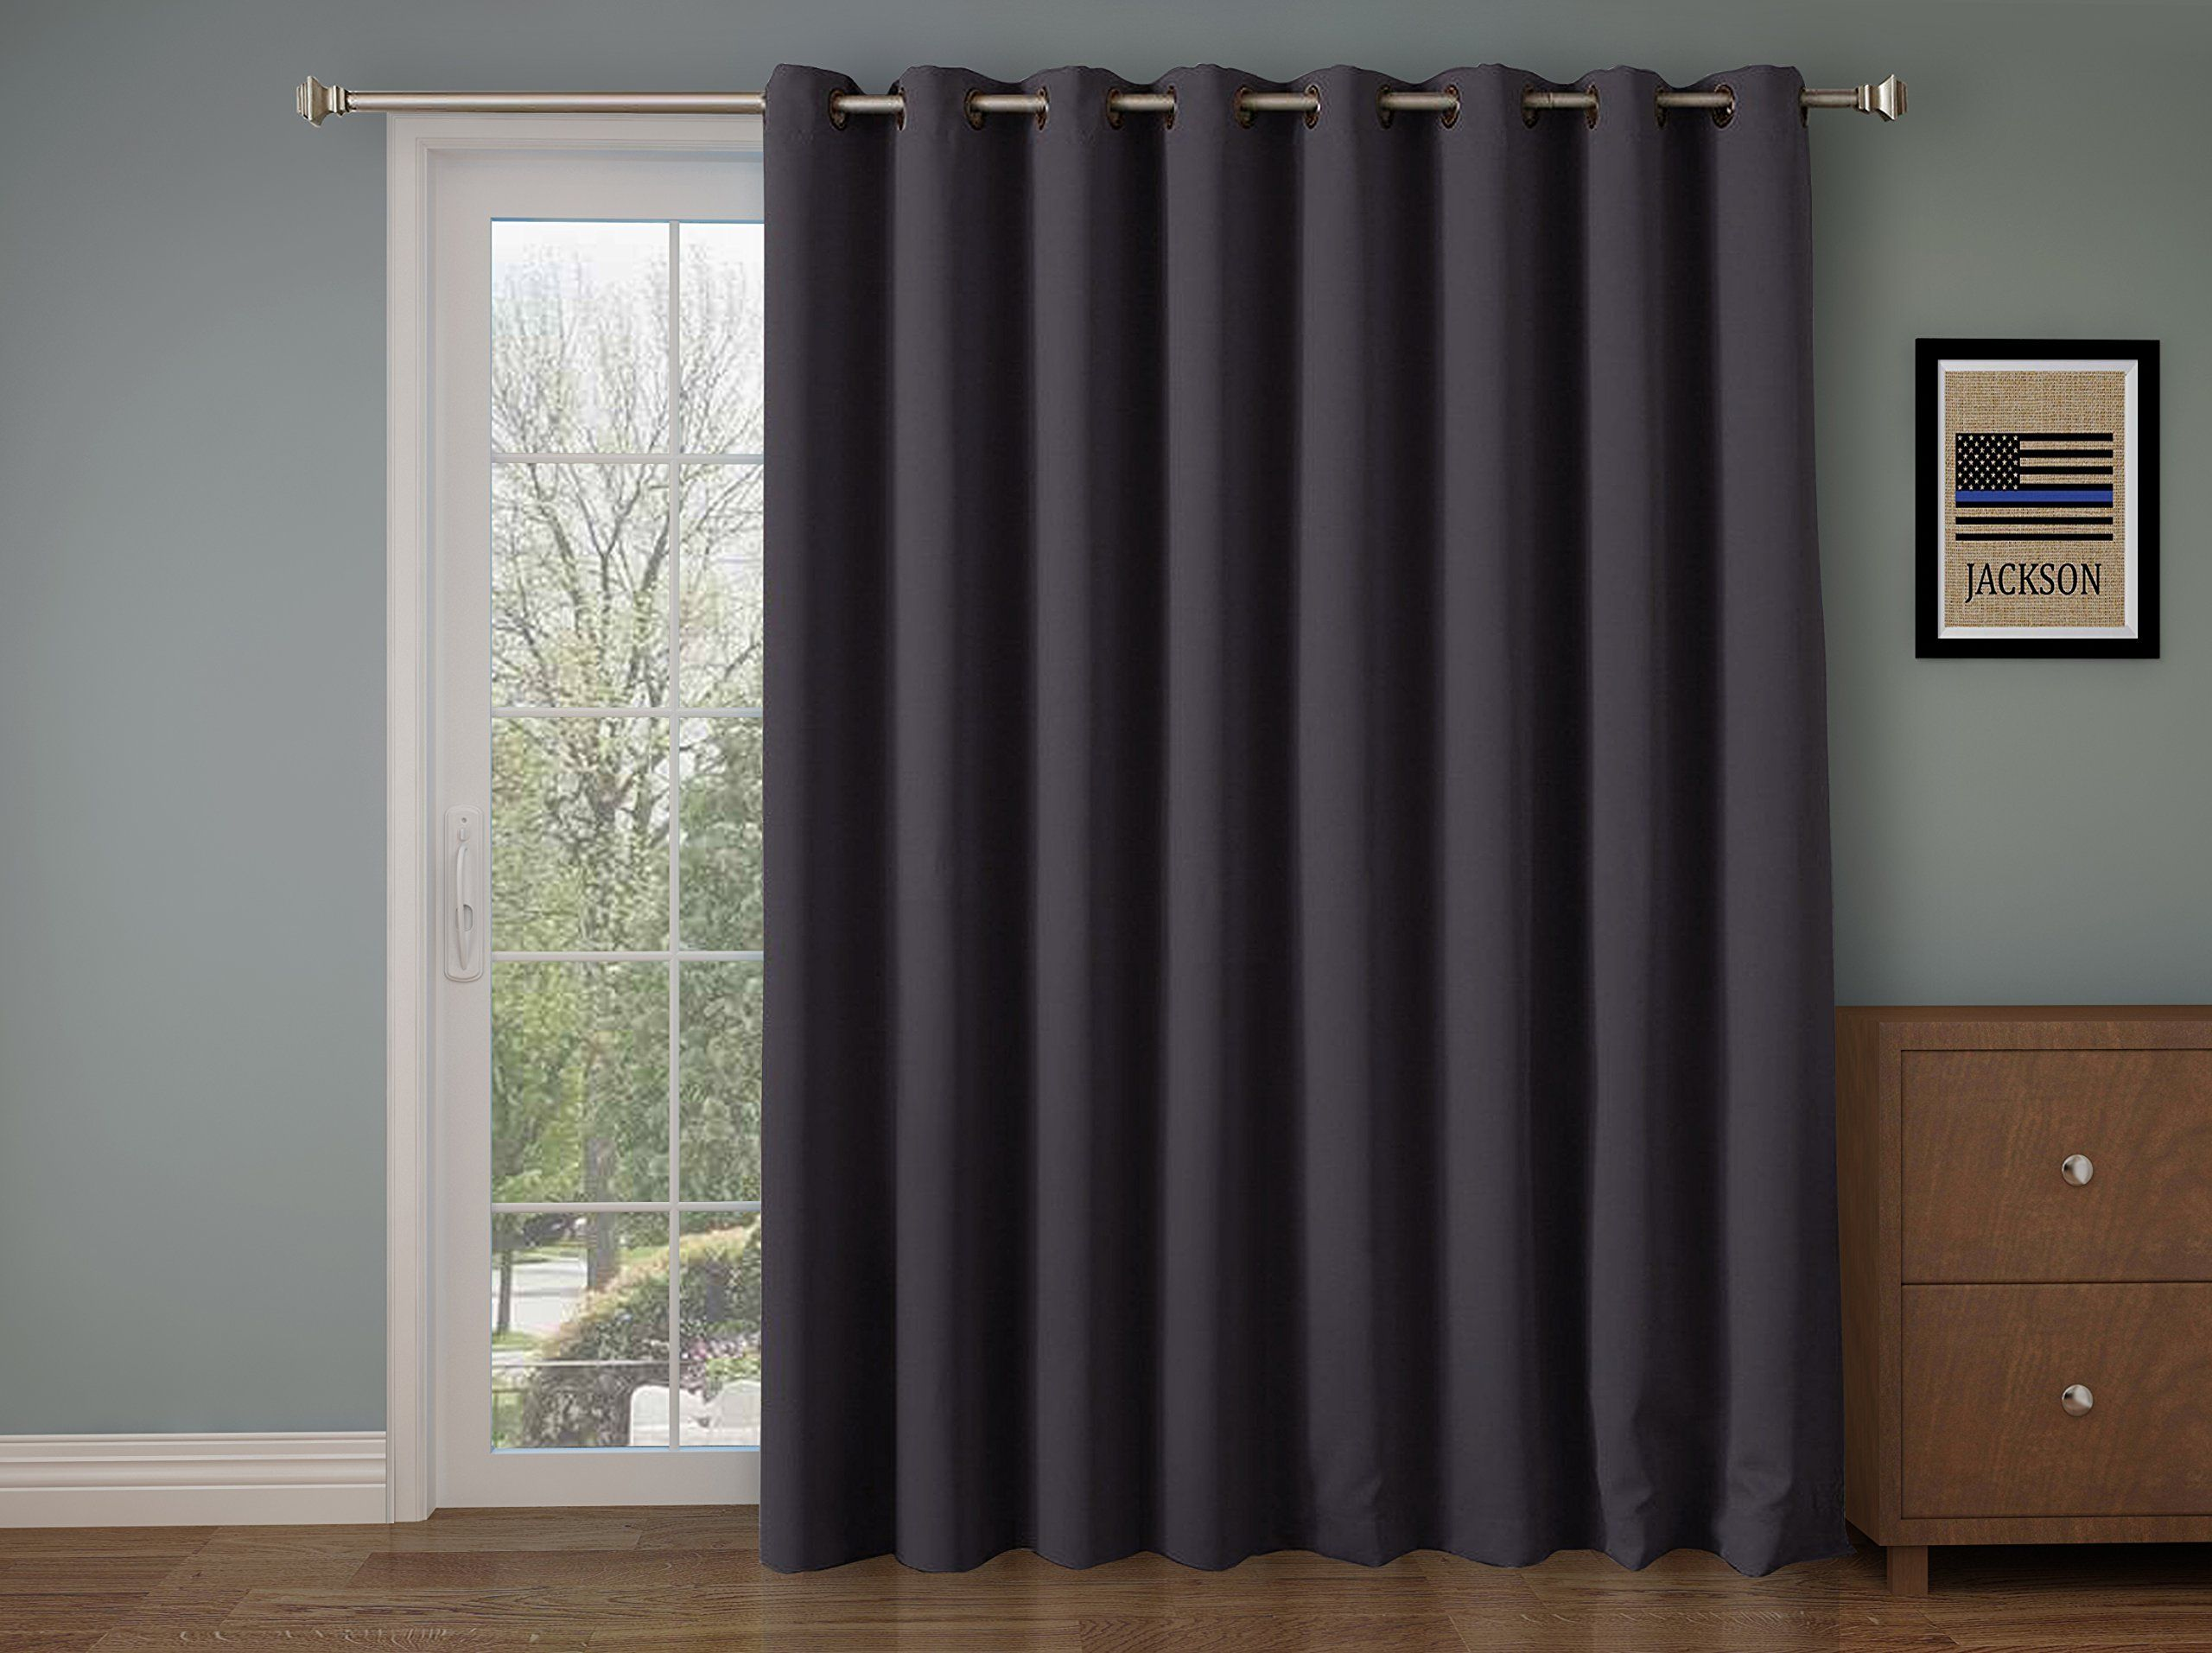 Rhf Wide Thermal Blackout Patio Door Curtain Panel Sliding Insulated Curtains Extra